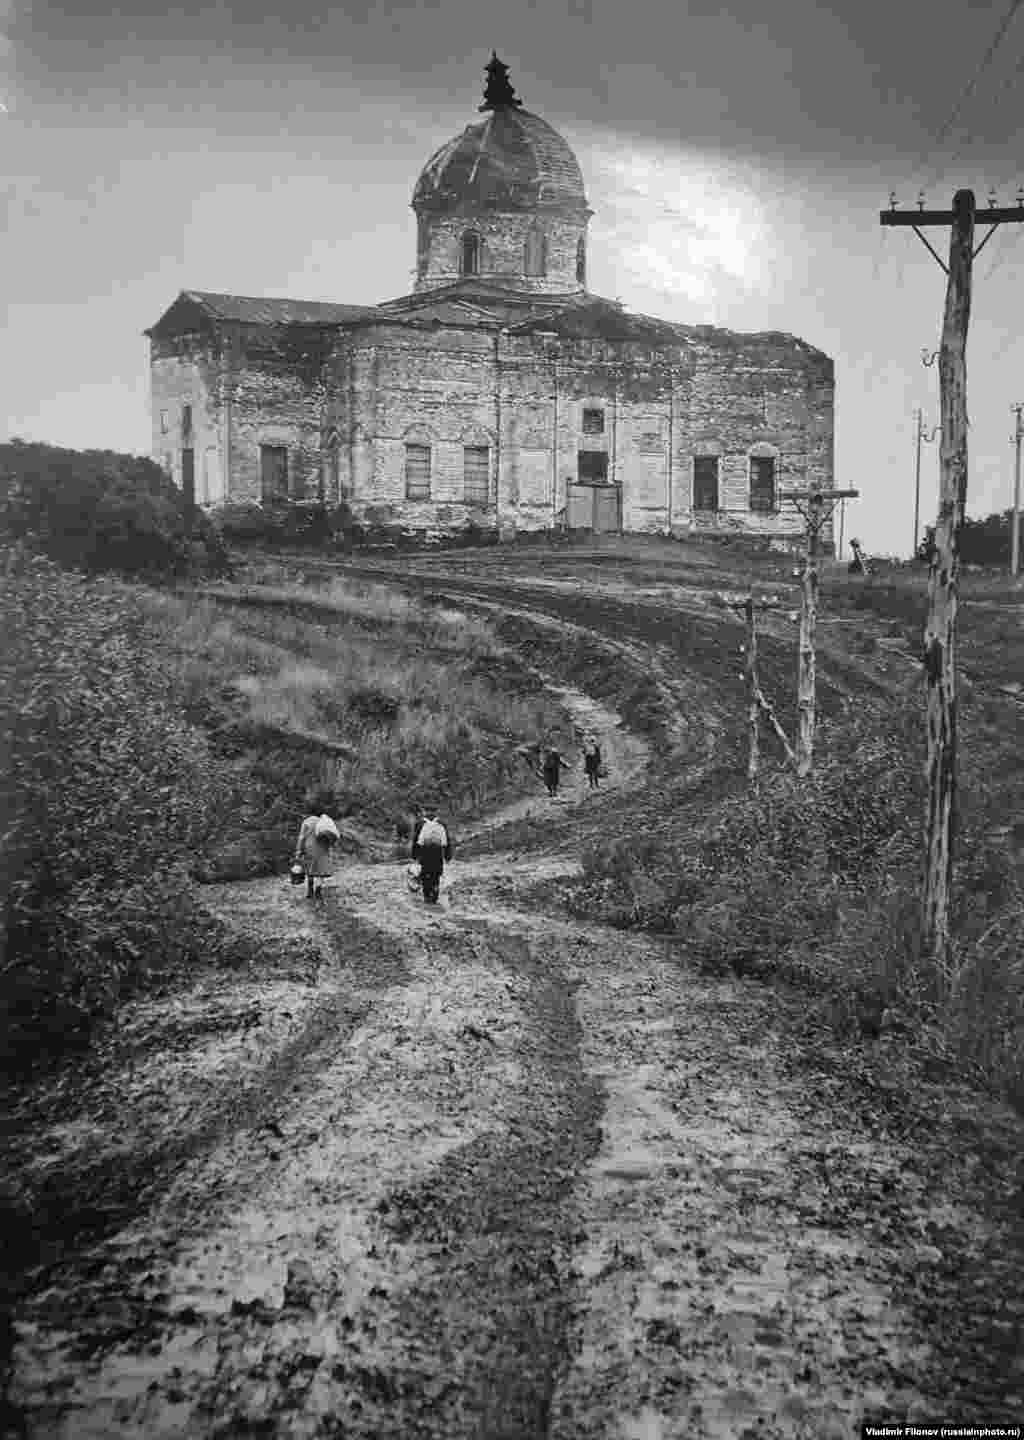 The road to a temple at an unidentified location in 1980. Official U.S.S.R. policy sought to do away with religion, and most churches were left to decay through the decades of Soviet rule.